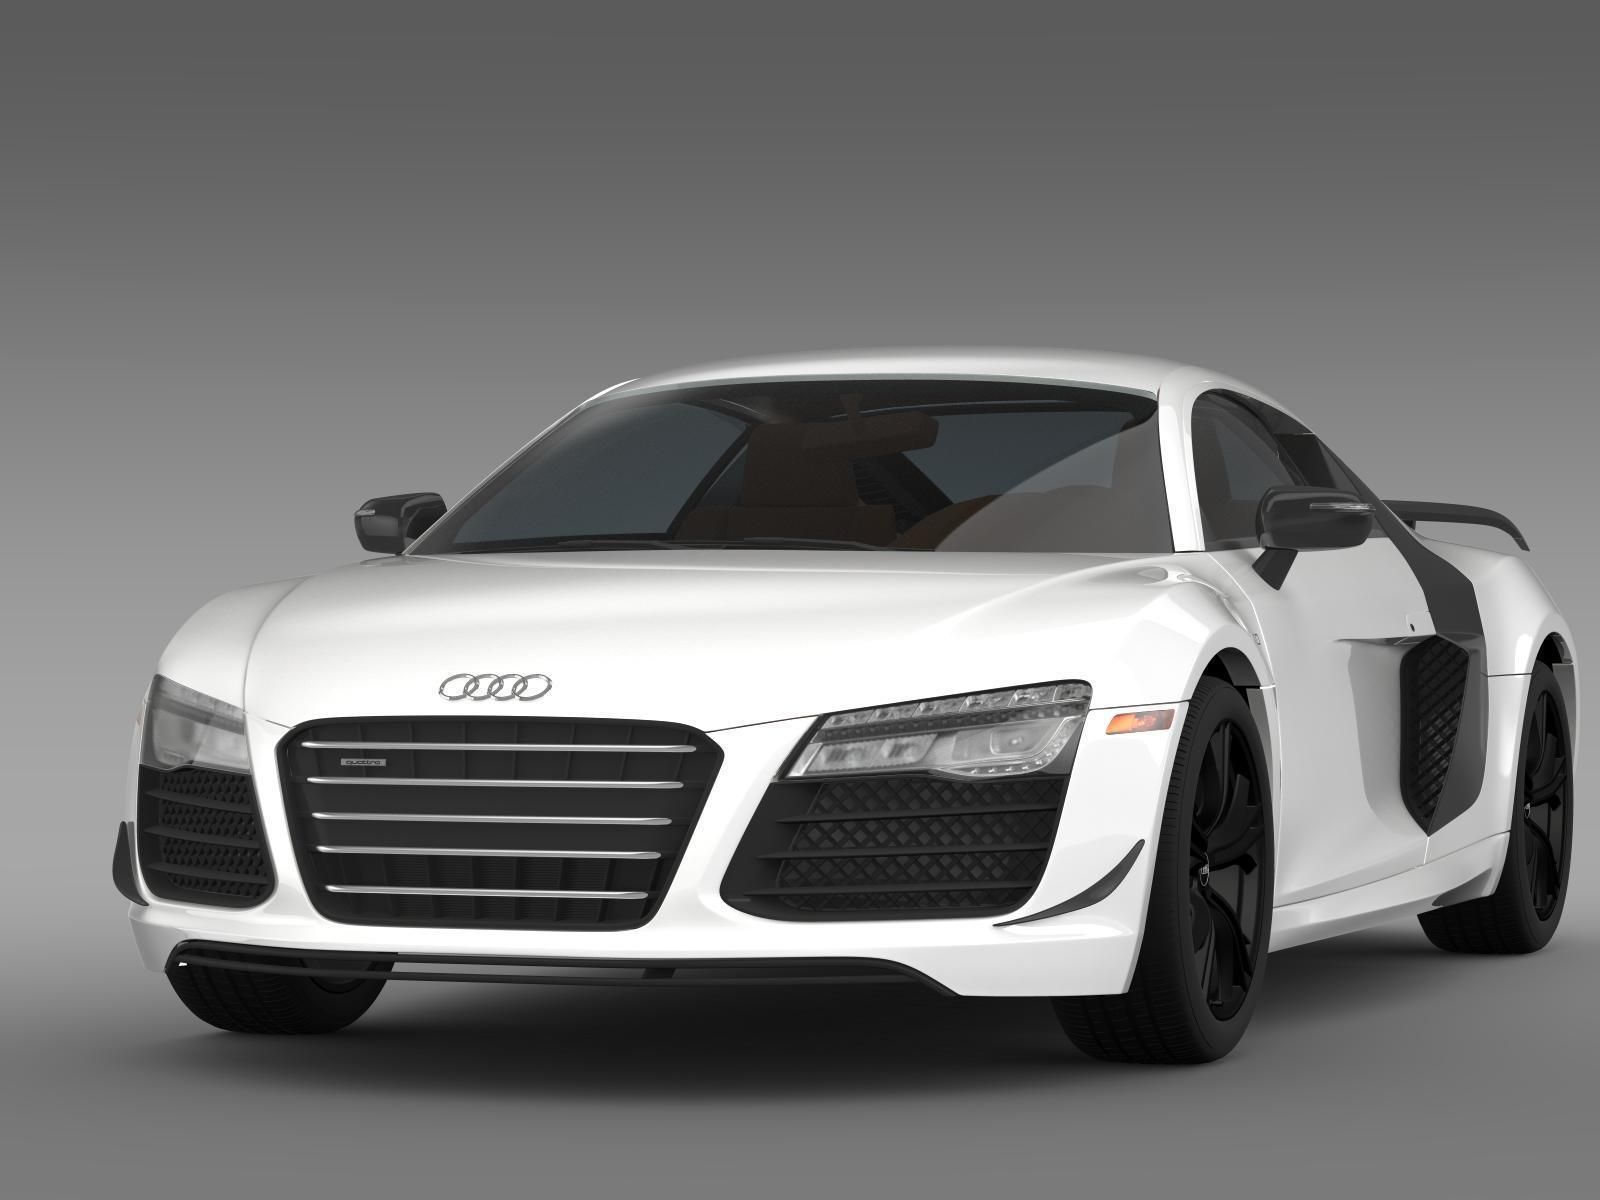 wallpaper images hd audi background cars cou coupe